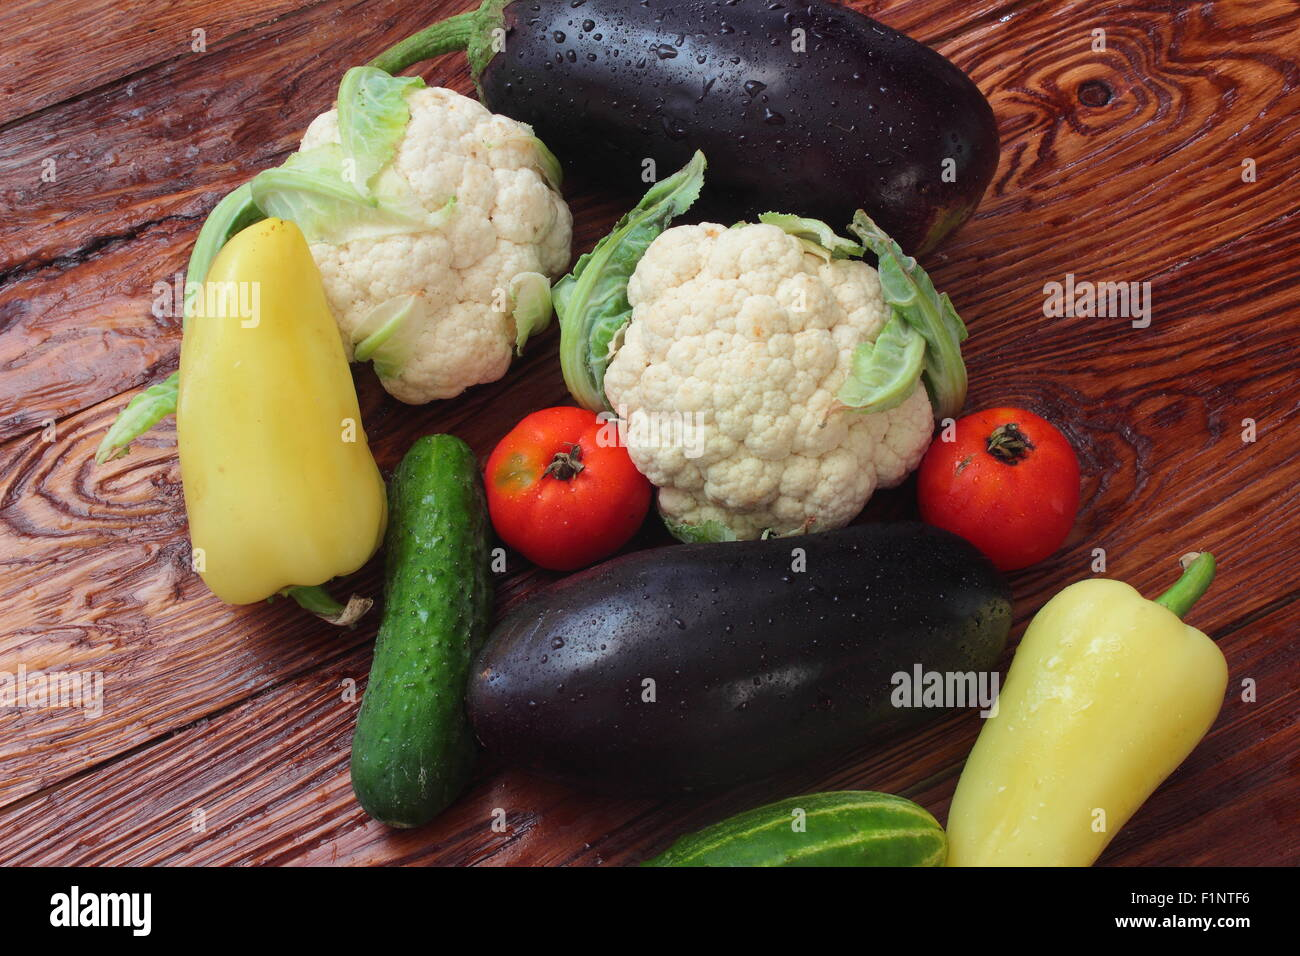 are bell peppers, cucumbers, eggplant, tomatoes, cauliflower - Stock Image